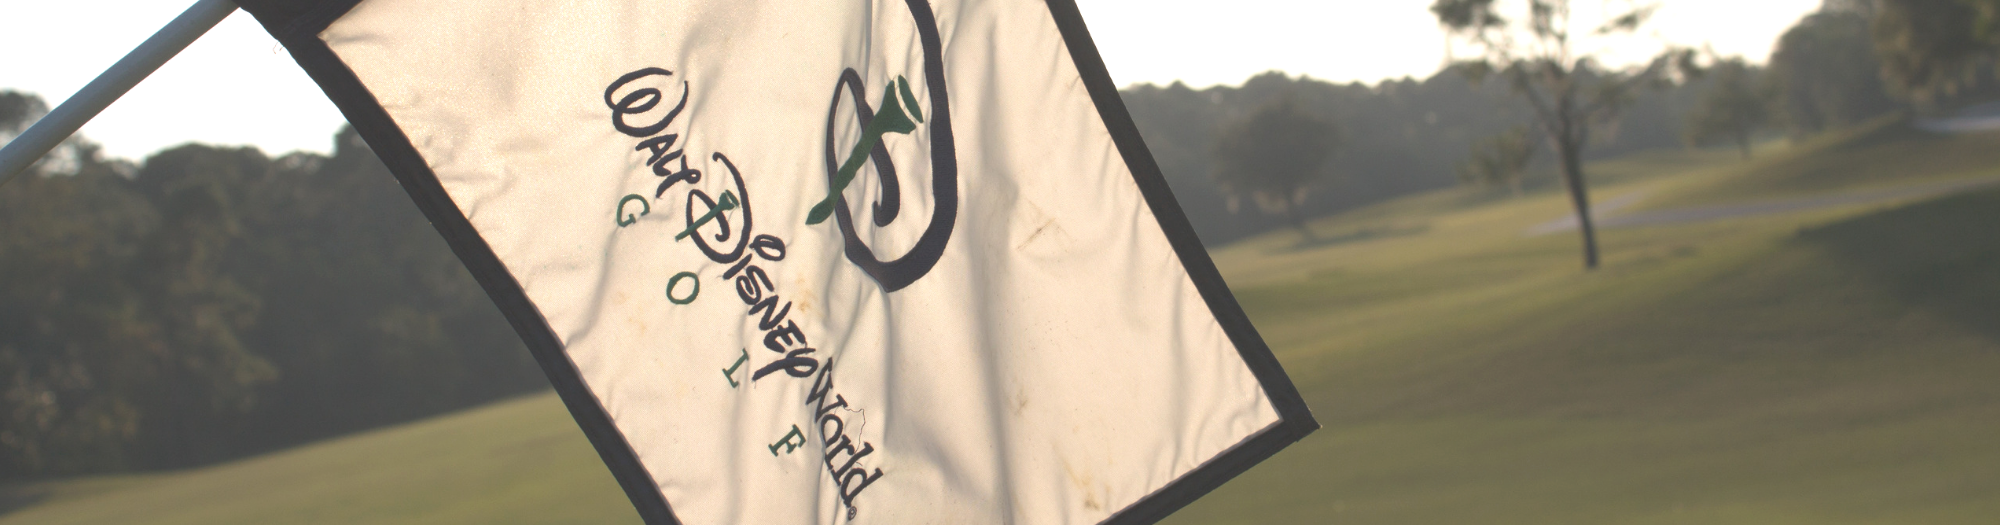 Disney Golf Resort Golf Flag